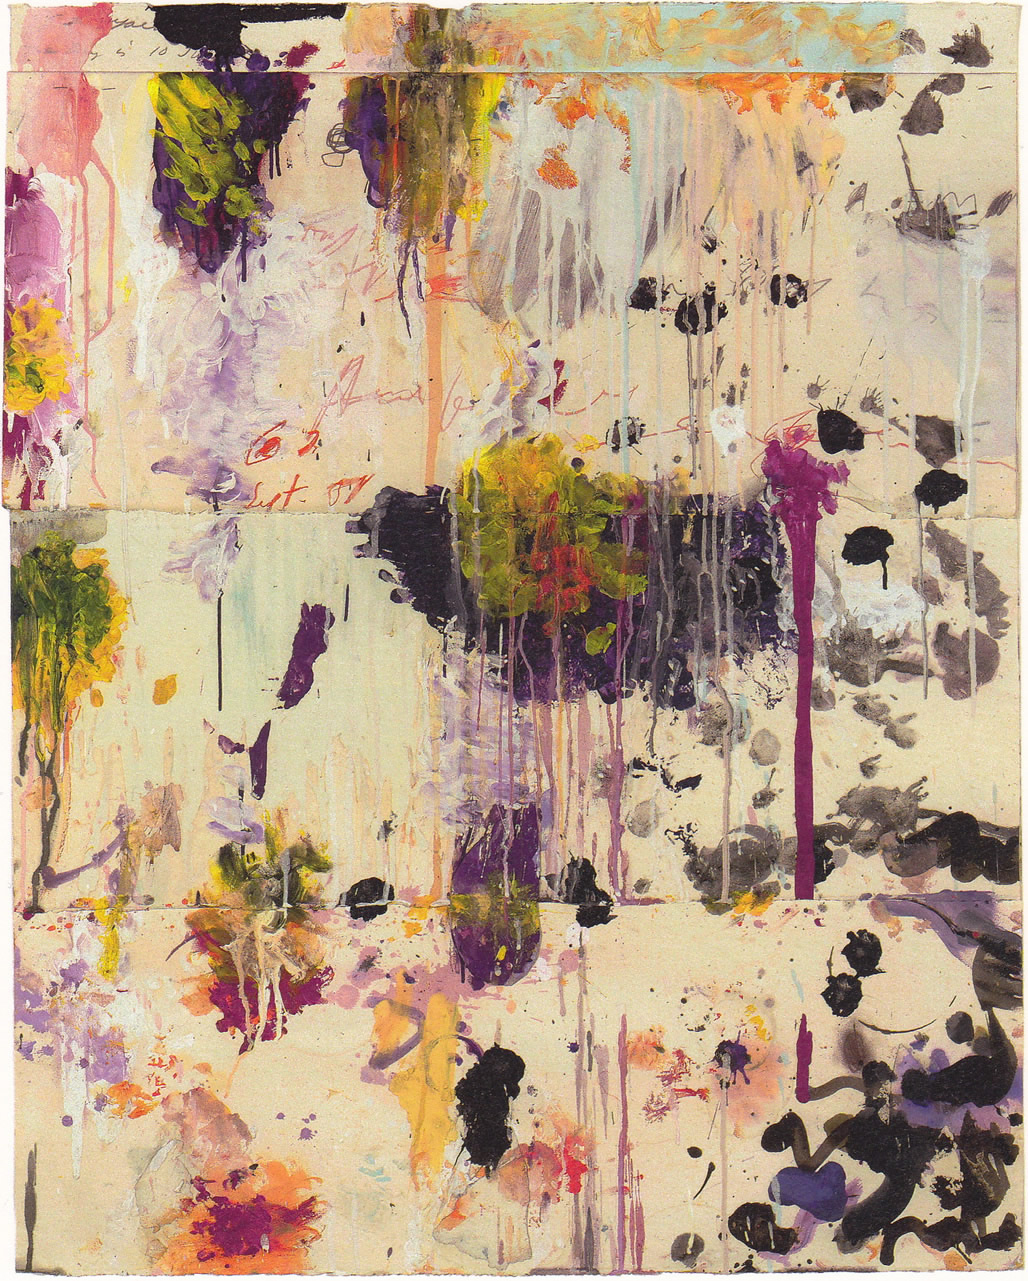 Cy Twombly, Untitled (2001)